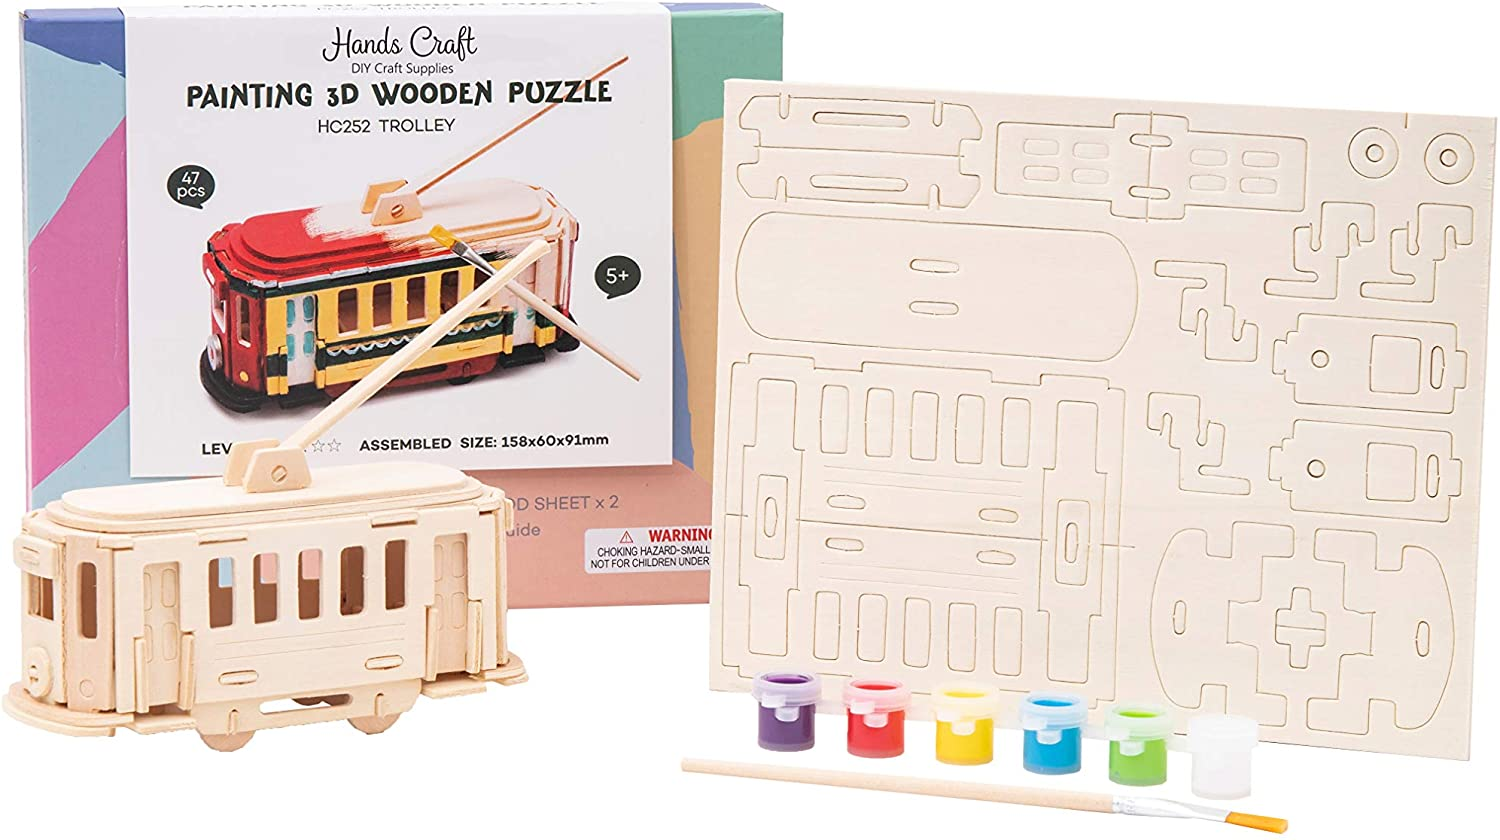 Hands Craft DIY Wooden Puzzle with Paint Kit (Trolley)